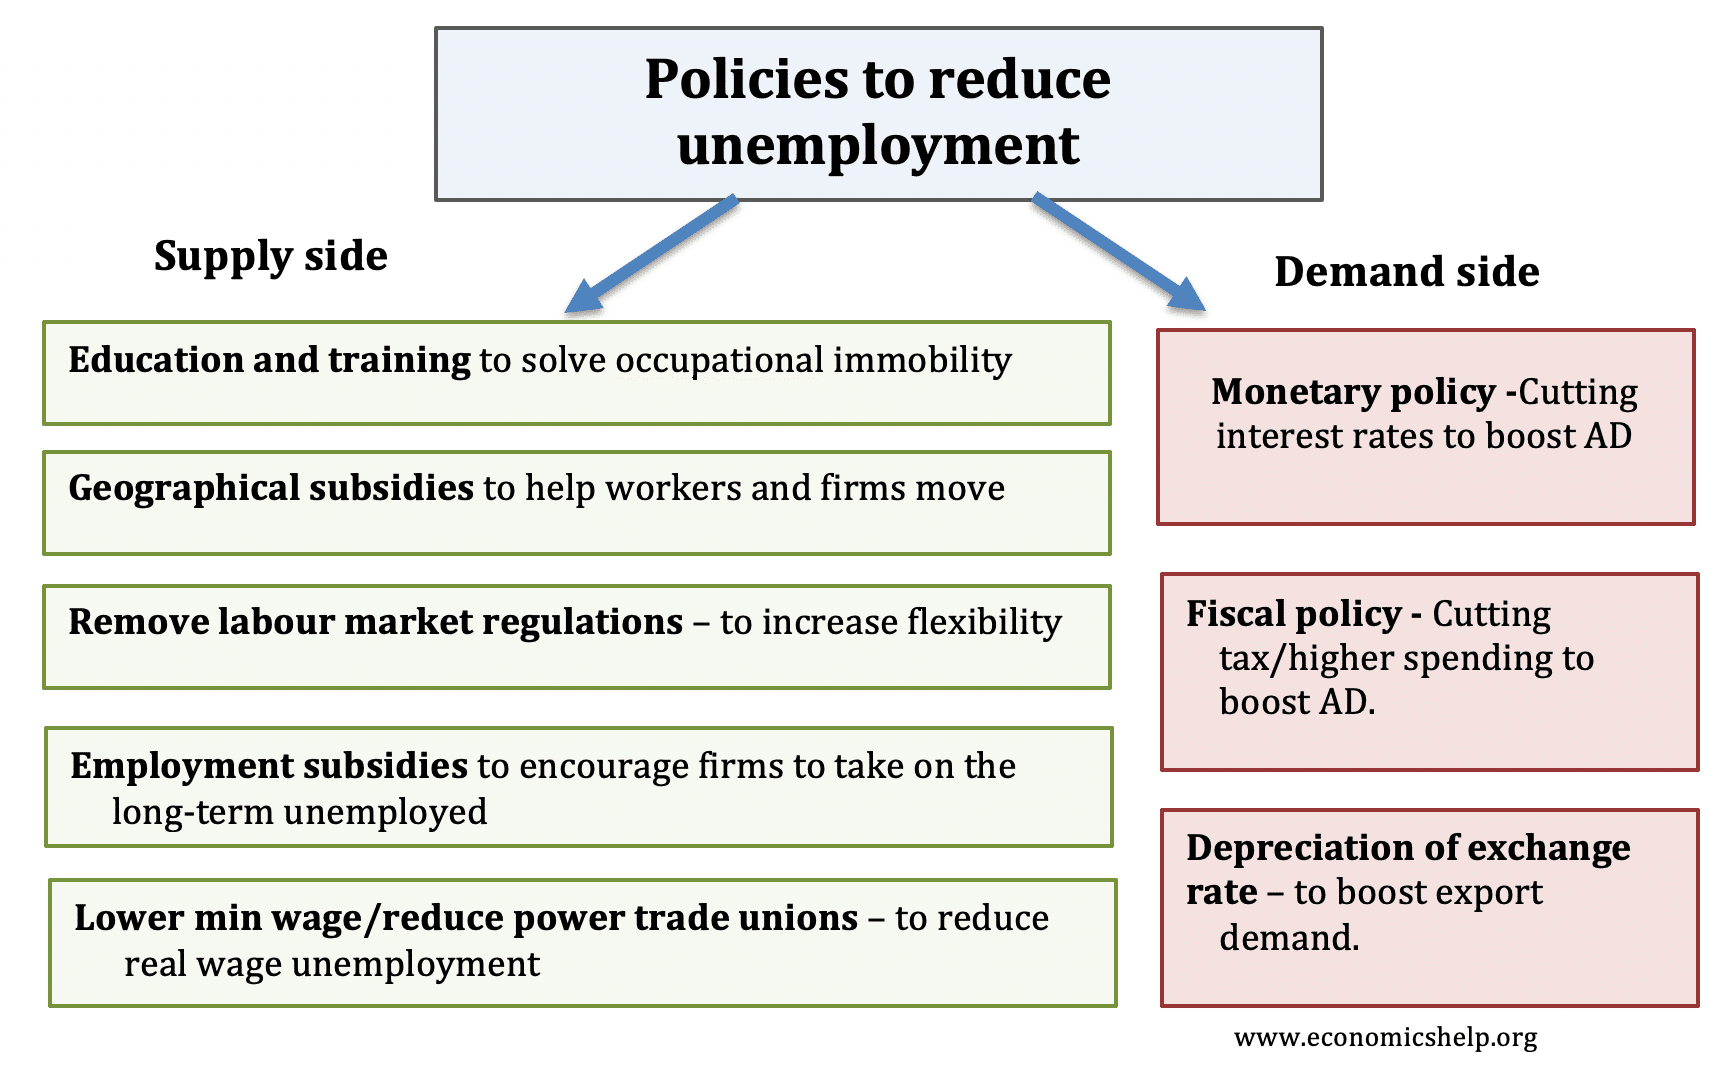 policies-to-reduce-unemployment